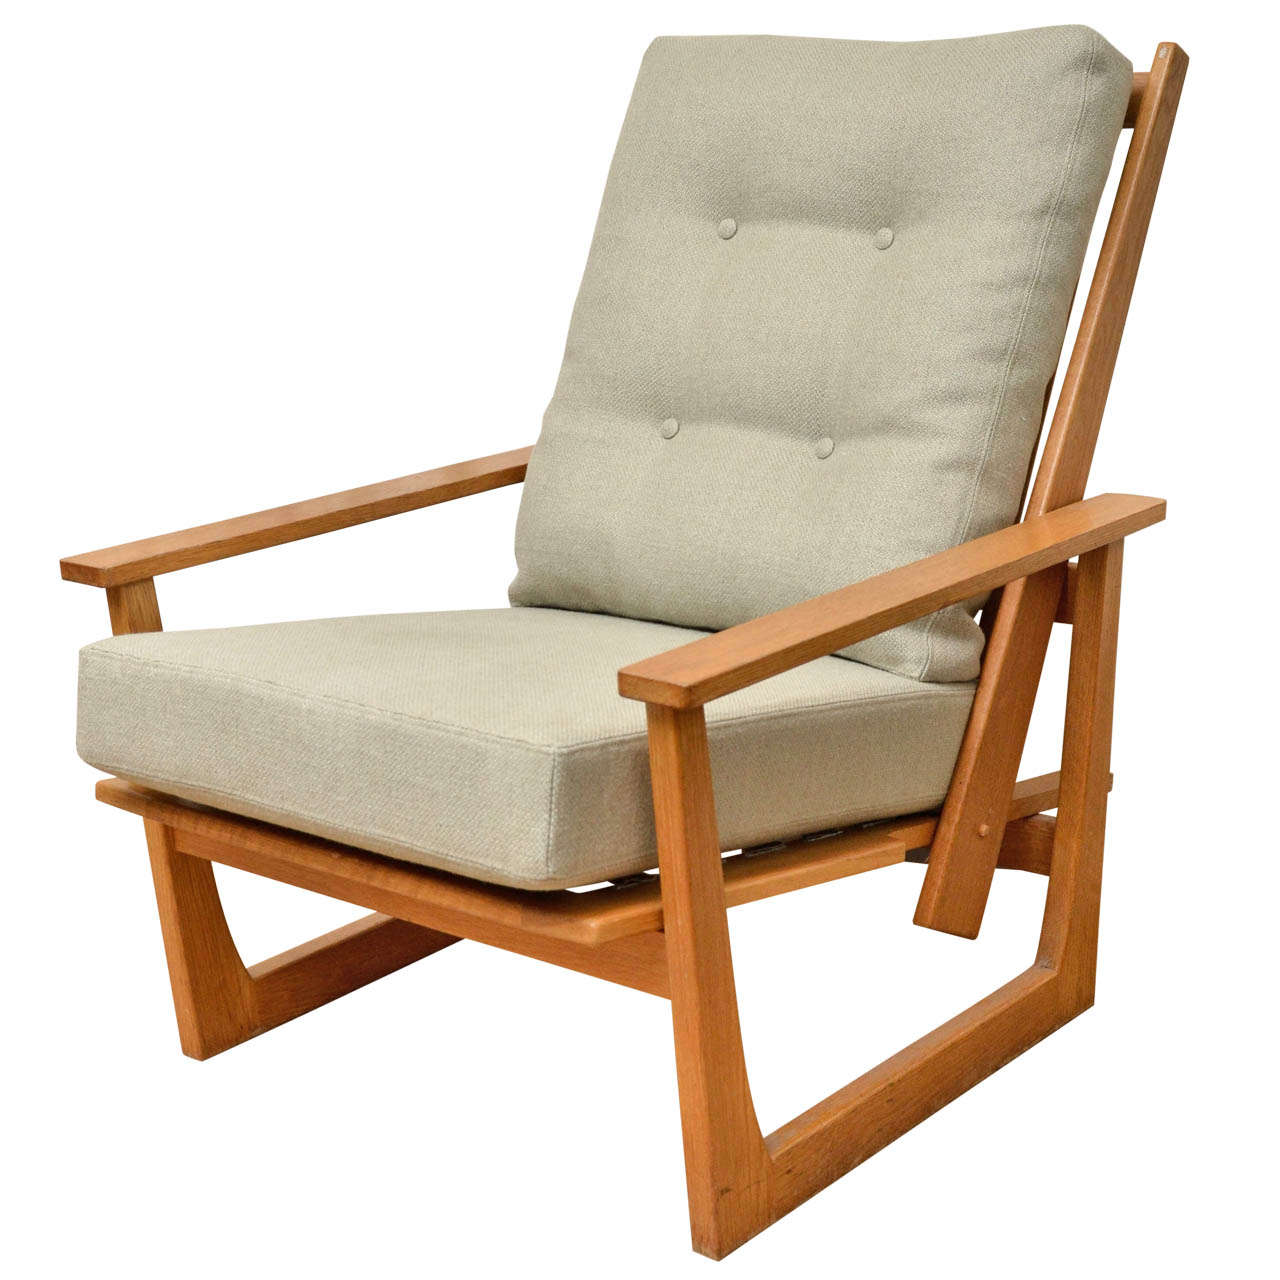 how to build a lounger chair in the woods